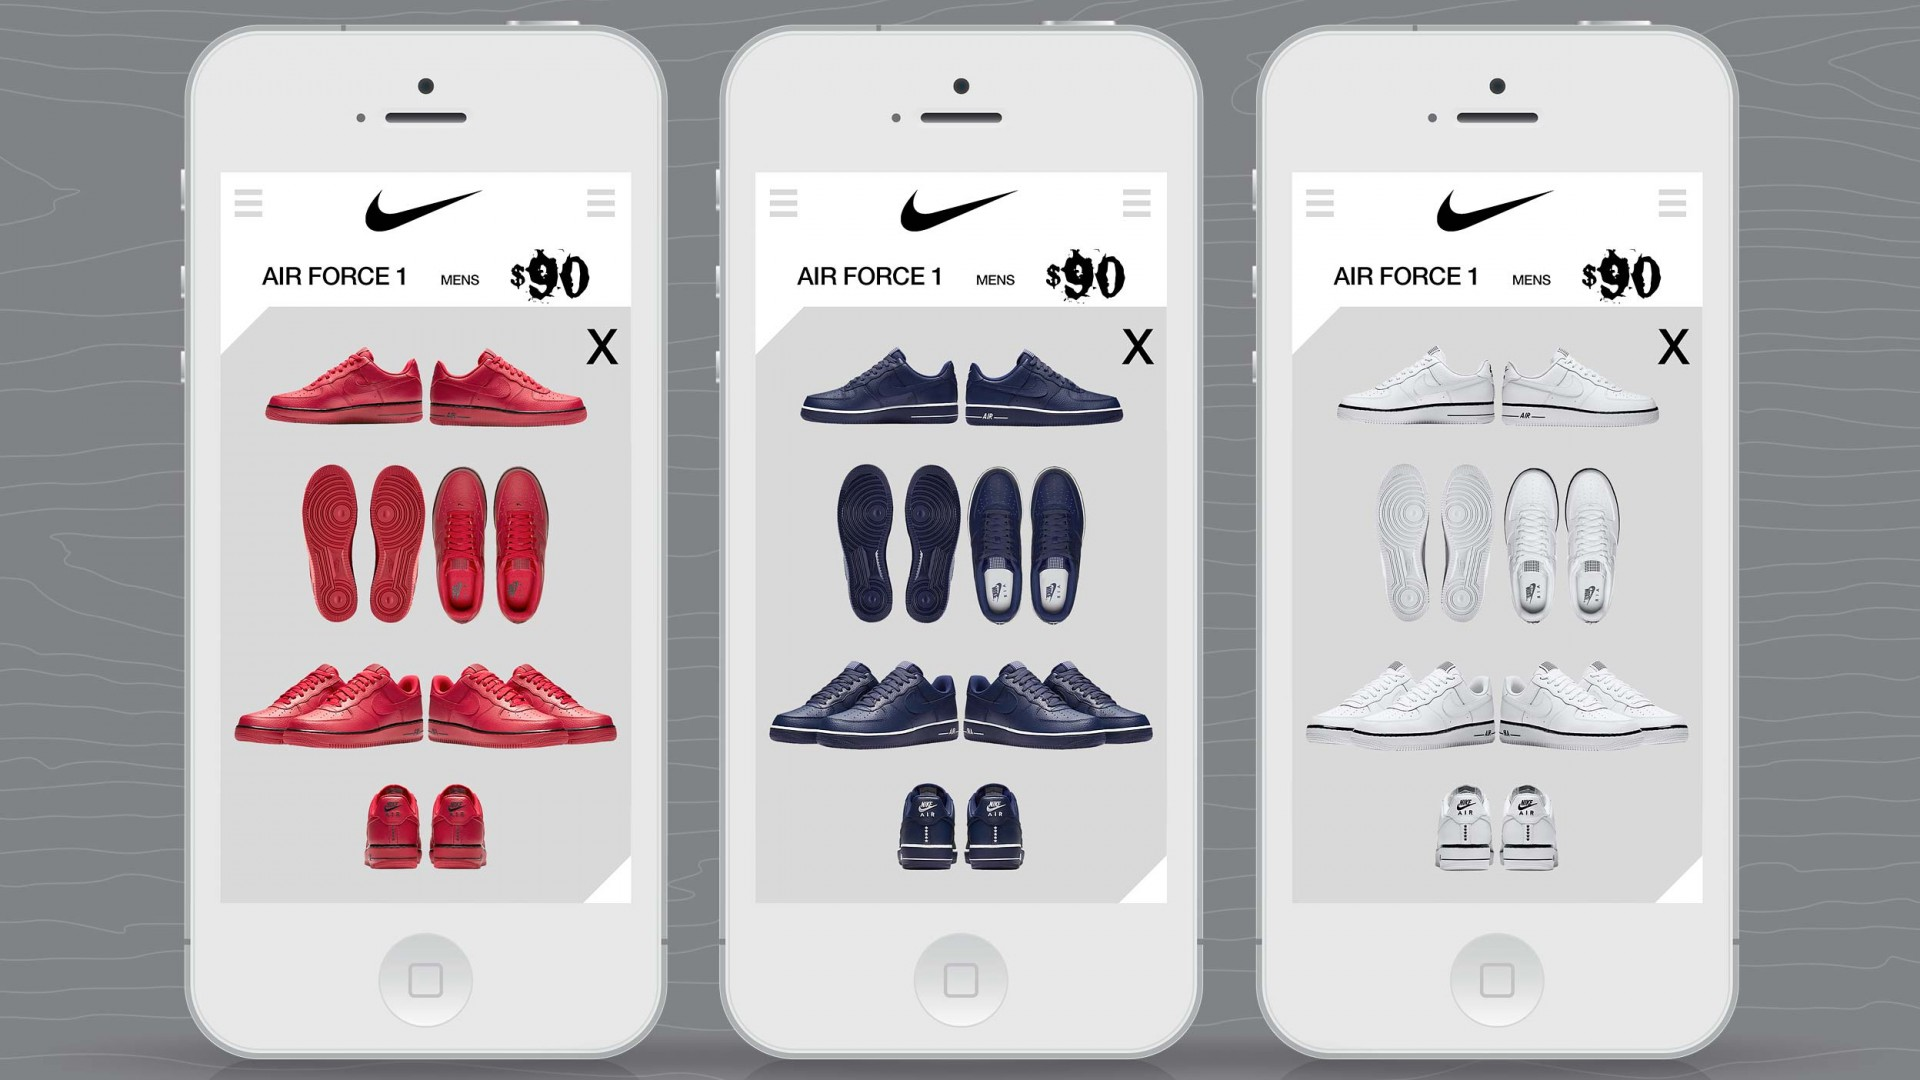 Journey With A Legend, Nike UX/UI, mobile phone shoe color views.